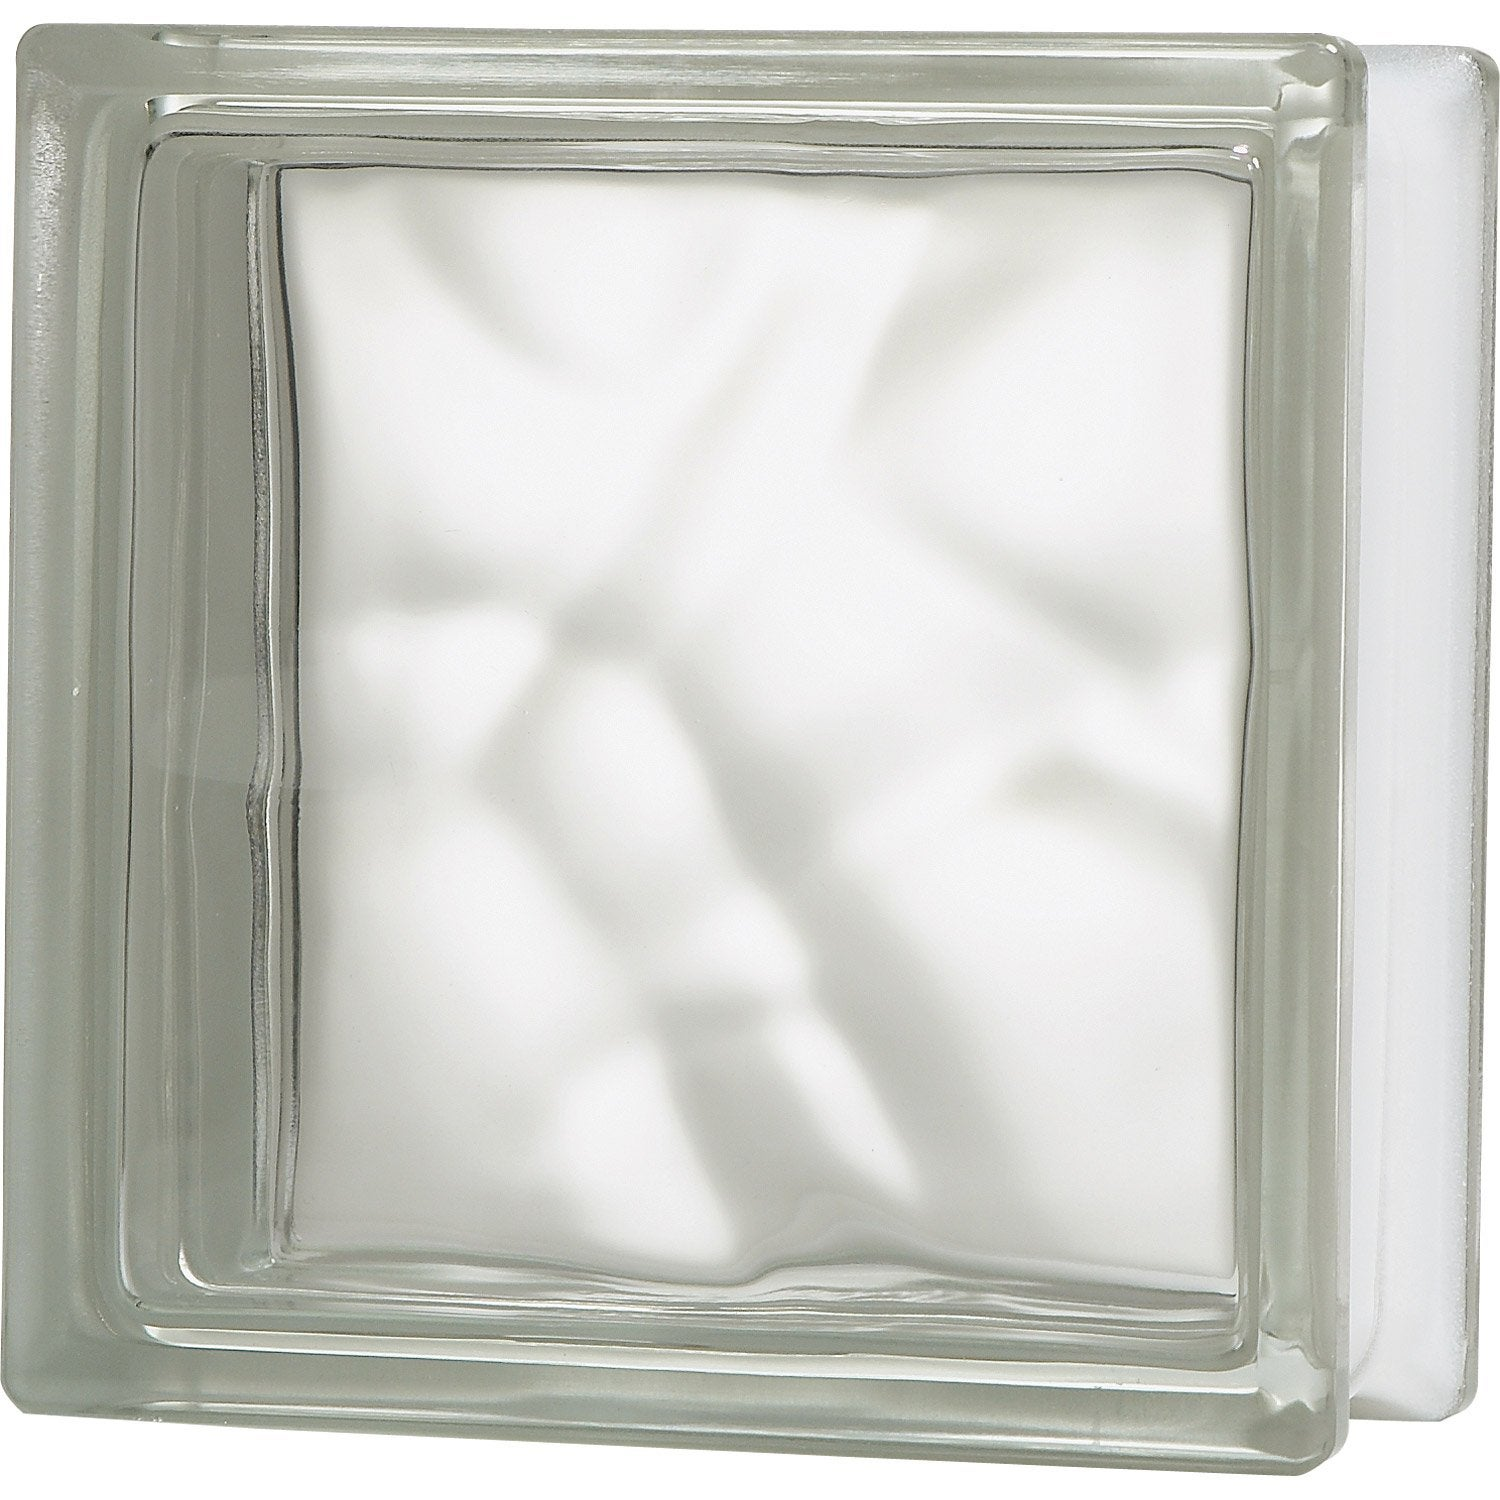 brique de verre transparent ondul brillant leroy merlin